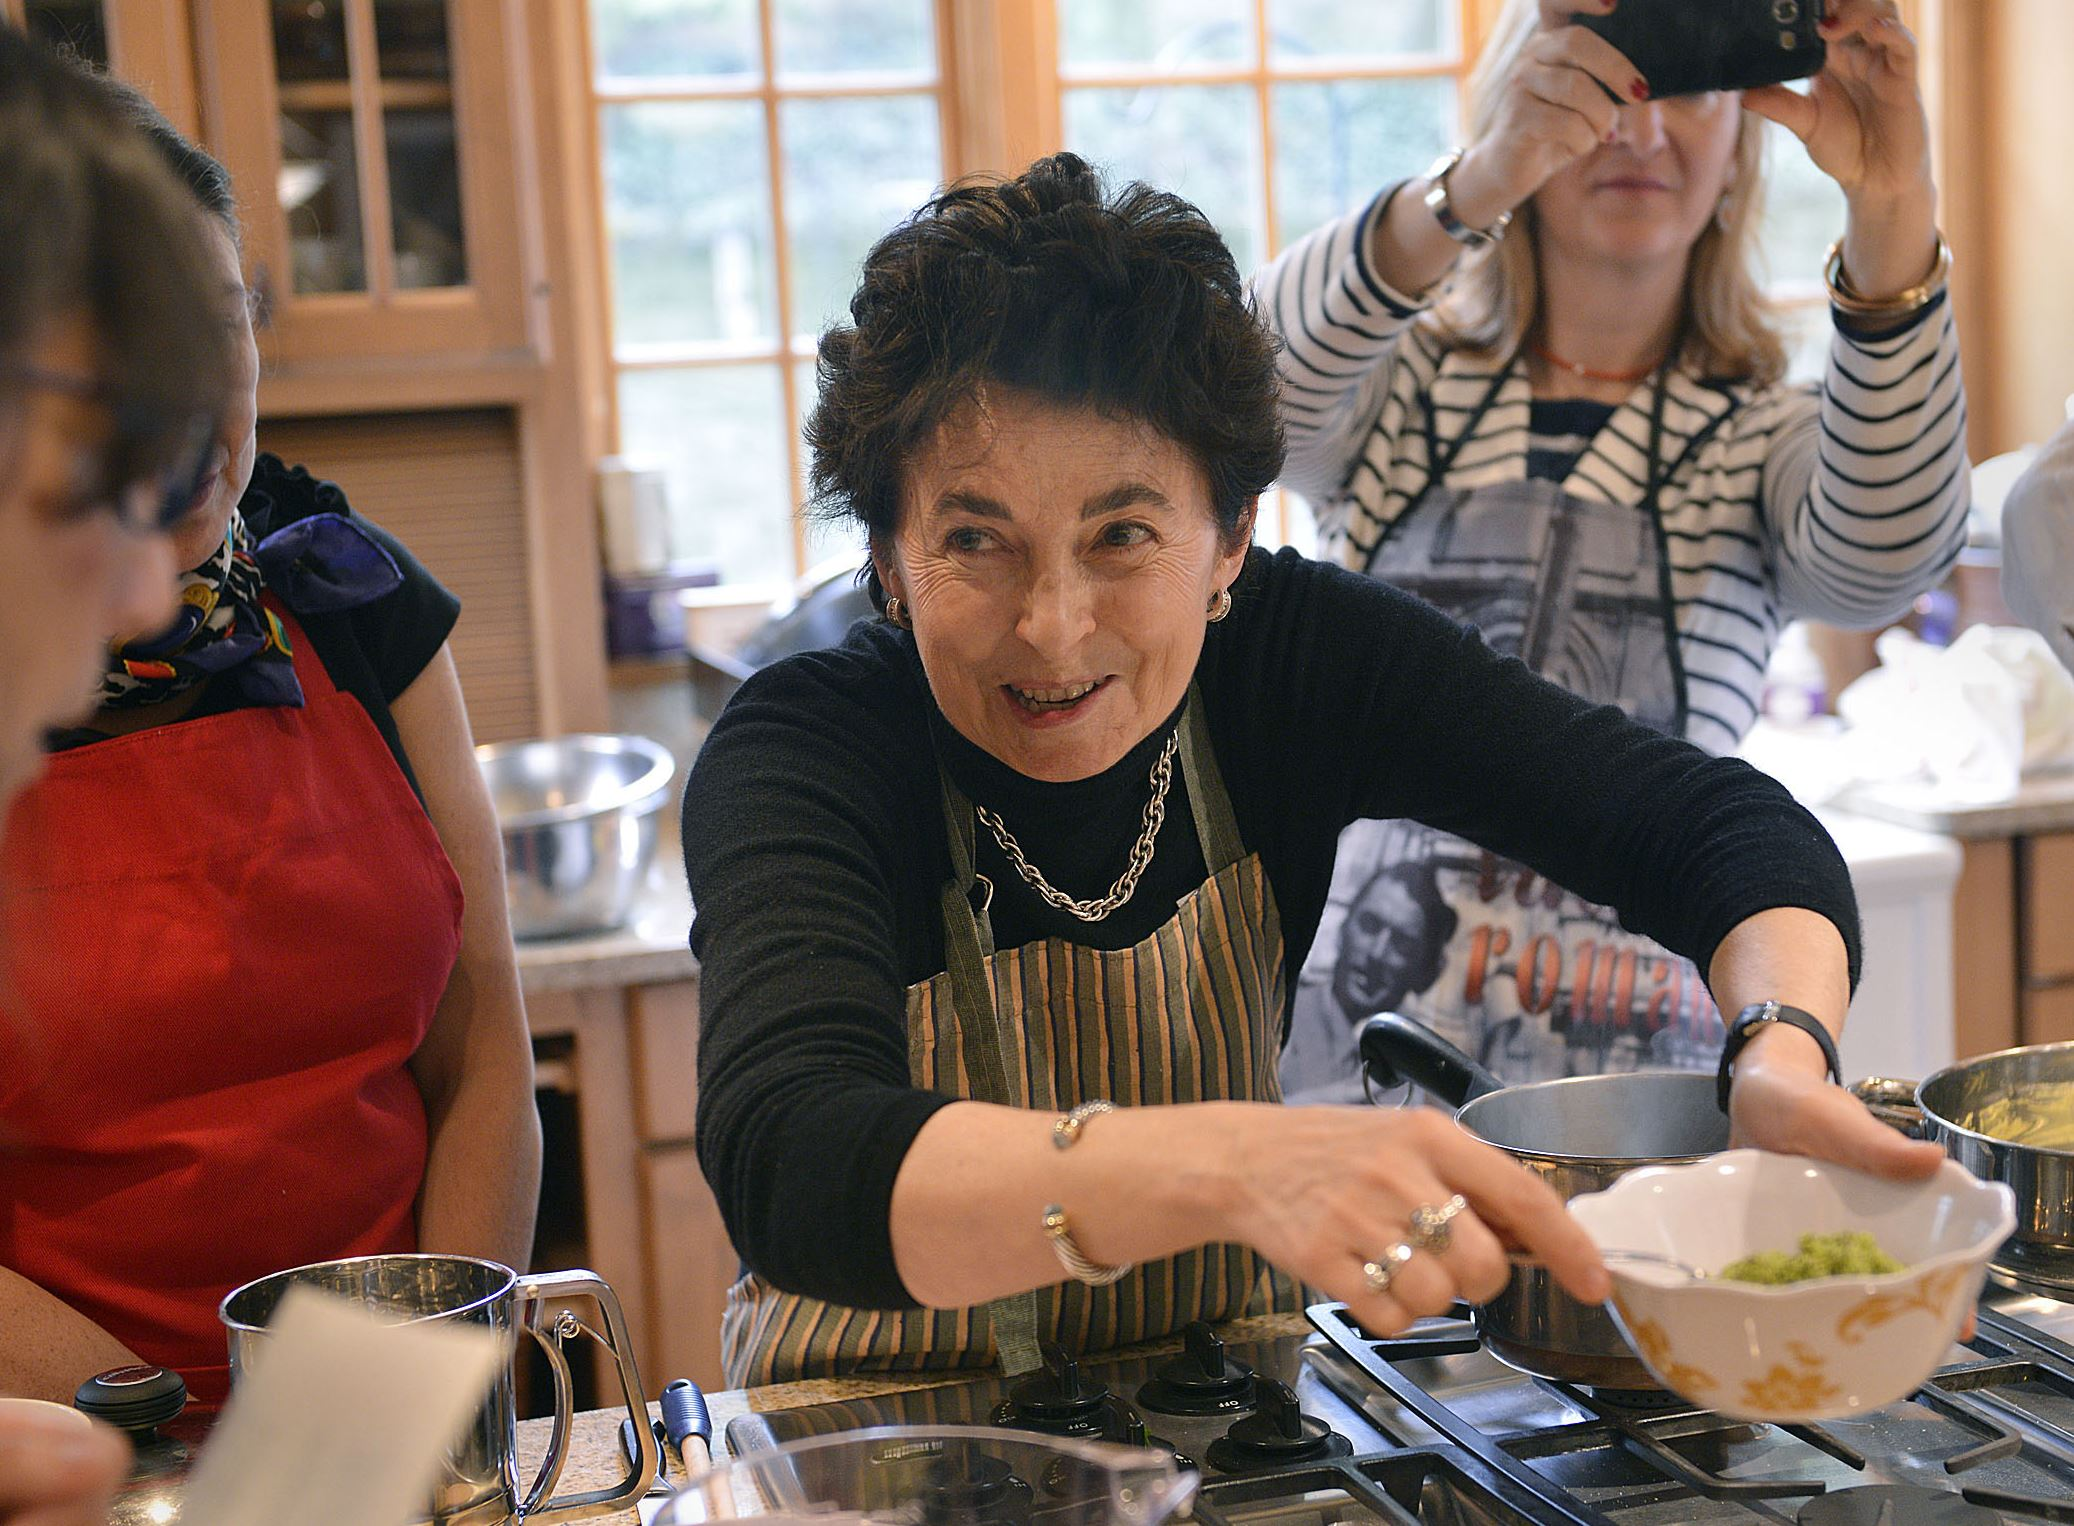 20150423lritalianseen07-3 The Duchess Nicoletta Polo Lanza Tomasi, center, a cooking teacher, talks about the special qualities of Sicilian pistachios during an April 23, 2015 cooking lesson in Squirrel Hill.